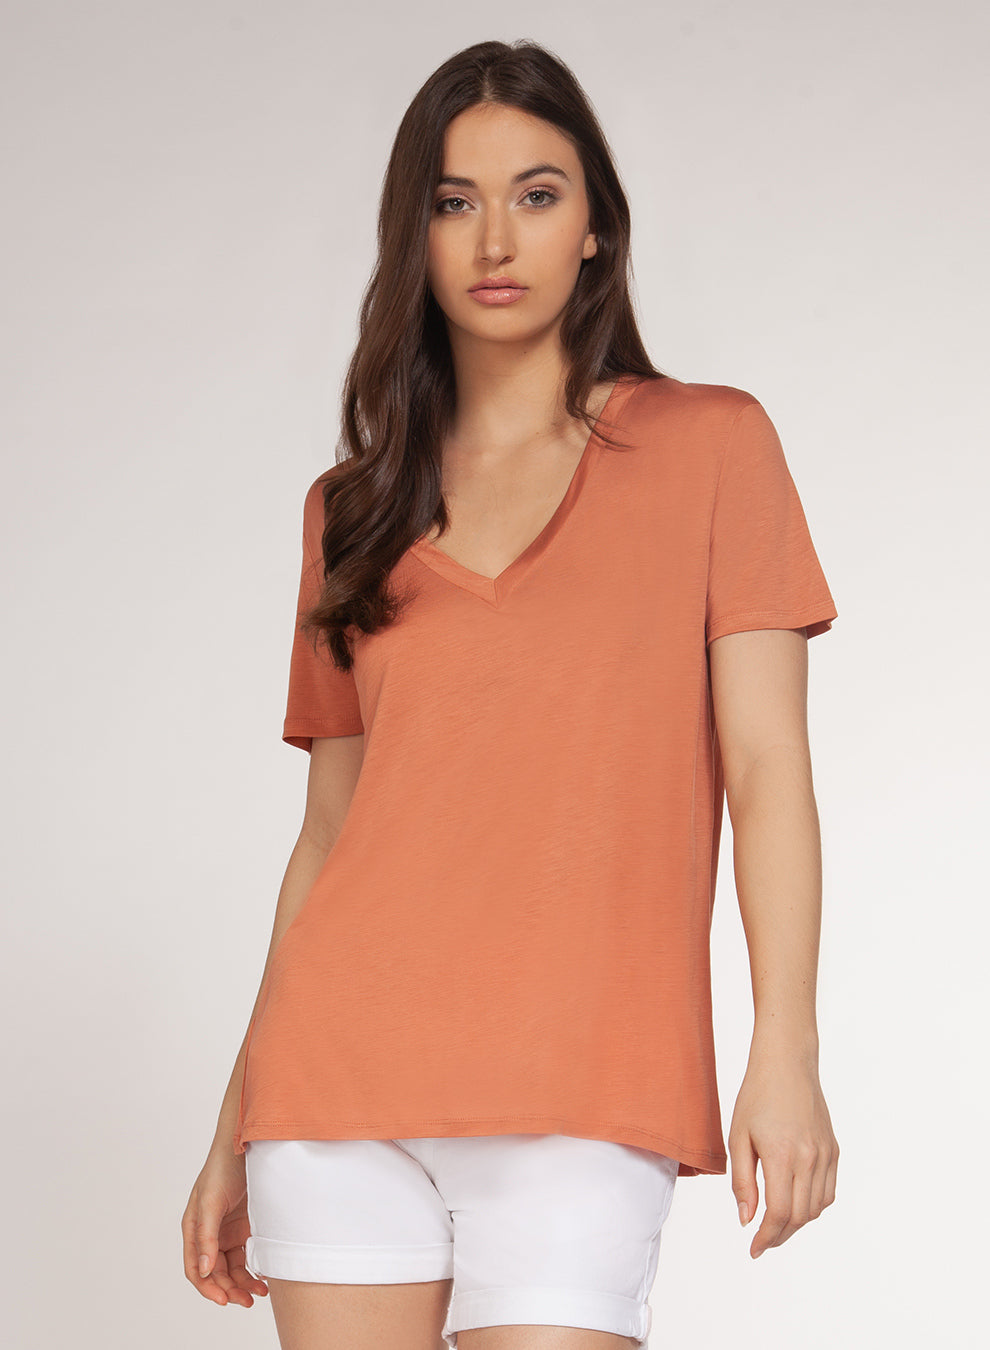 DEX CLOTHING LADIES V-NECK CORAL SS TOP